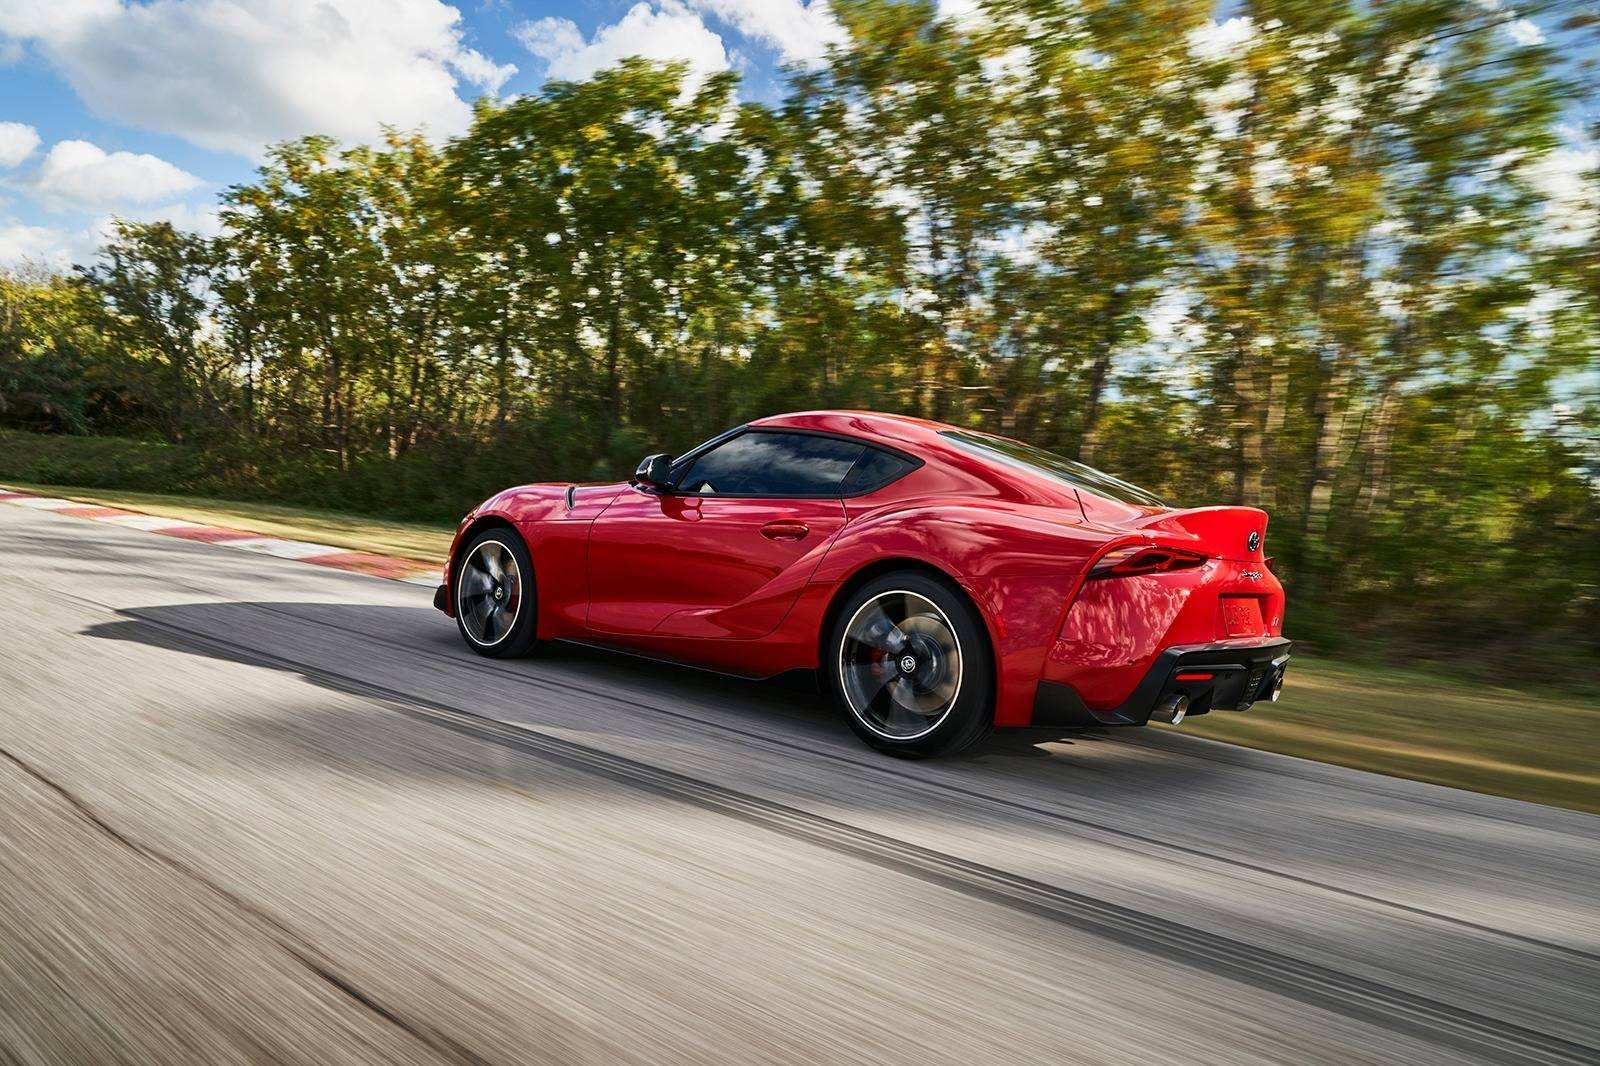 54 The Best Images Of 2020 Toyota Supra New Review